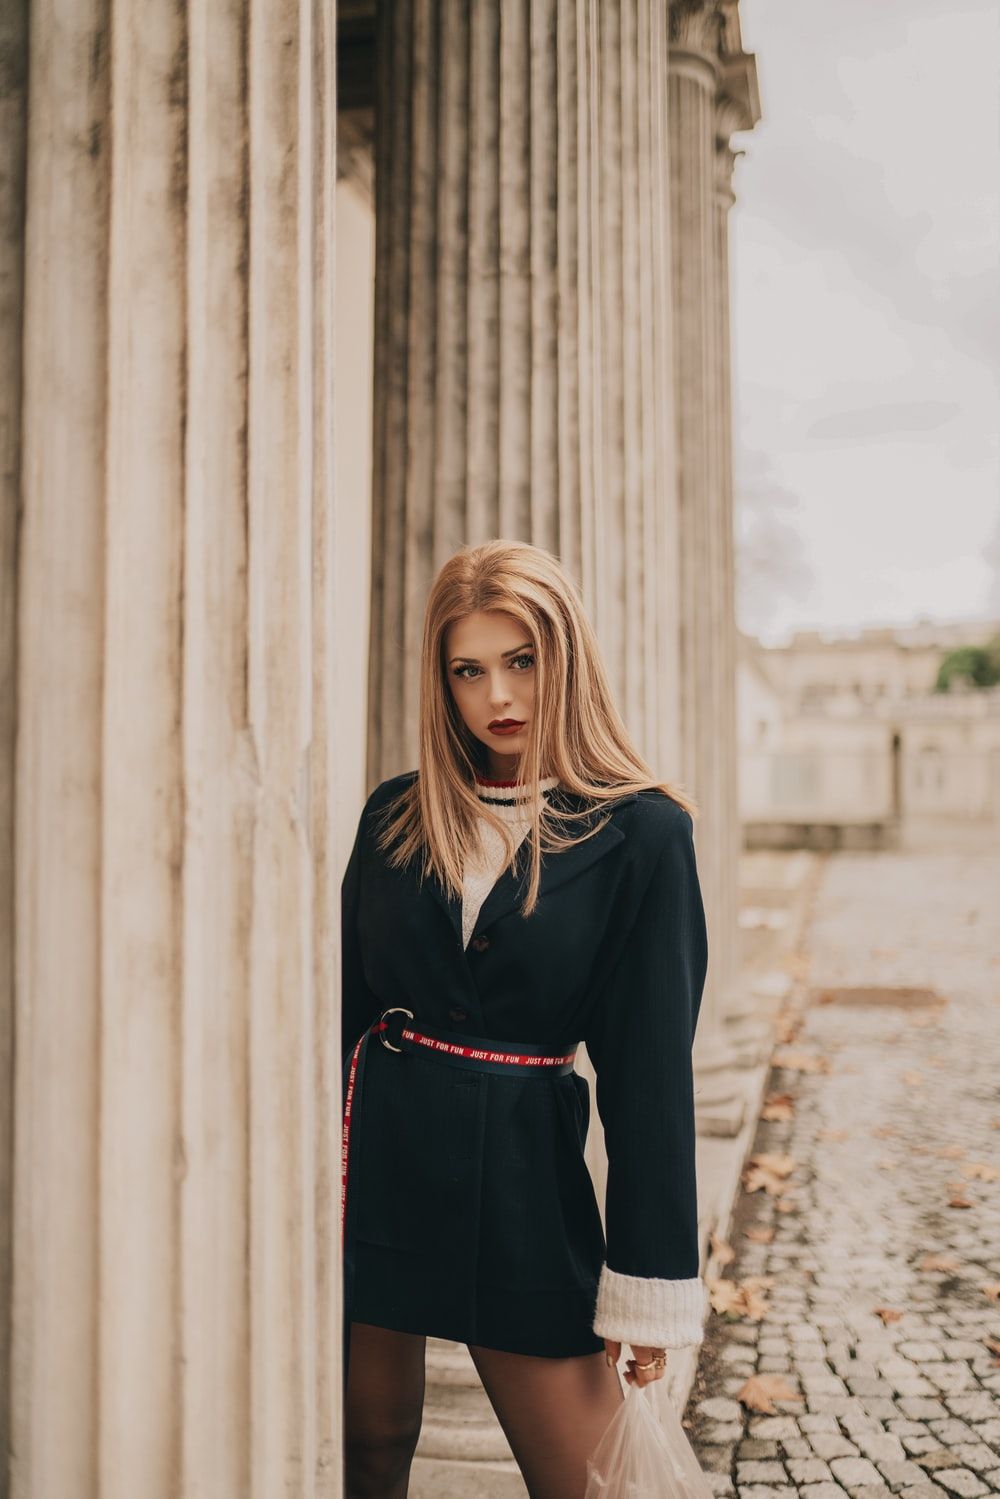 selective focus photography of woman wearing black long-sleeved dress during daytime